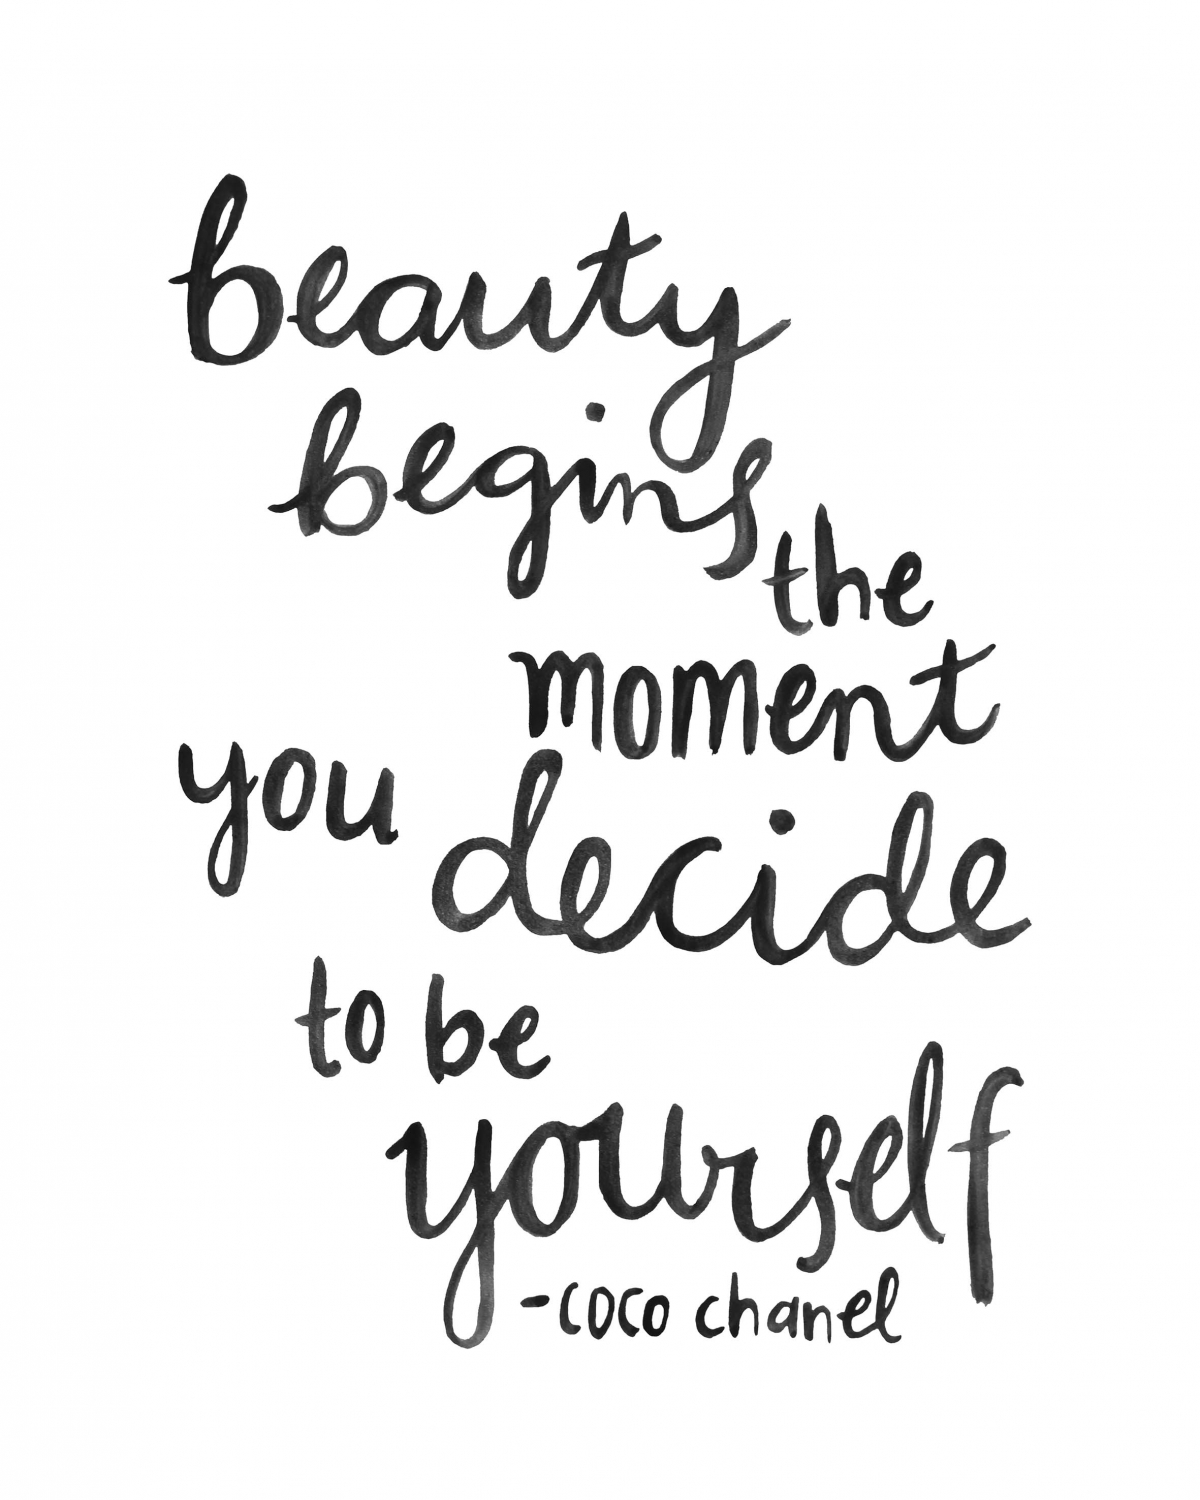 quotes about beauty - ratethequote